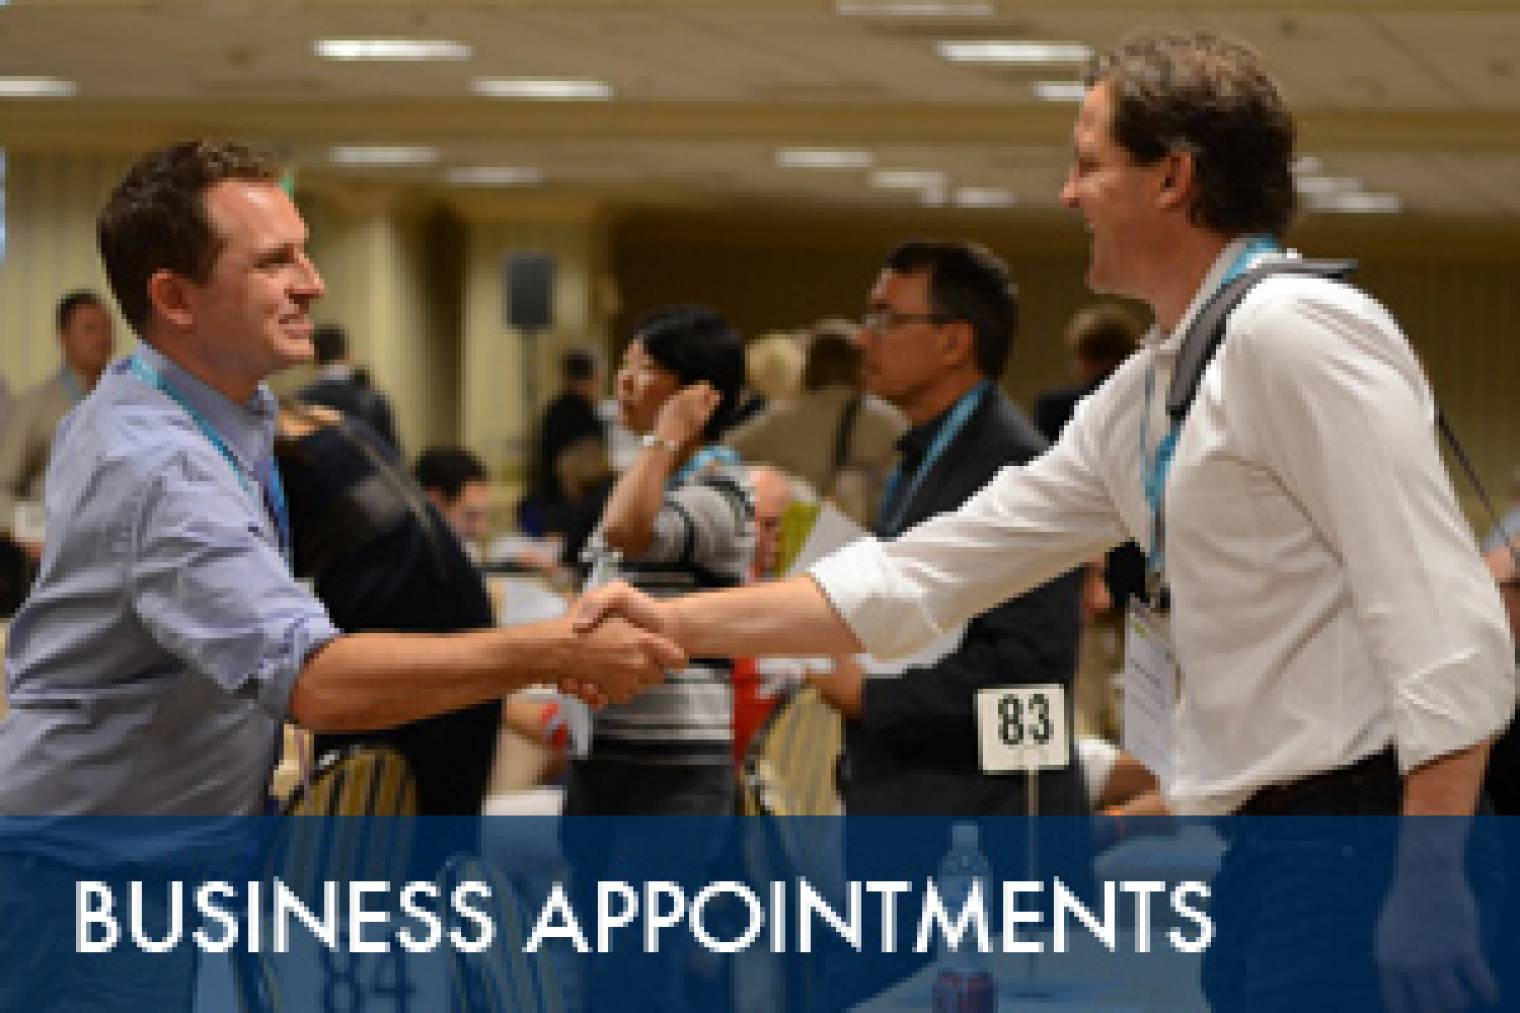 WYSTC 2014: Marcom business appointment scheduling opening today!